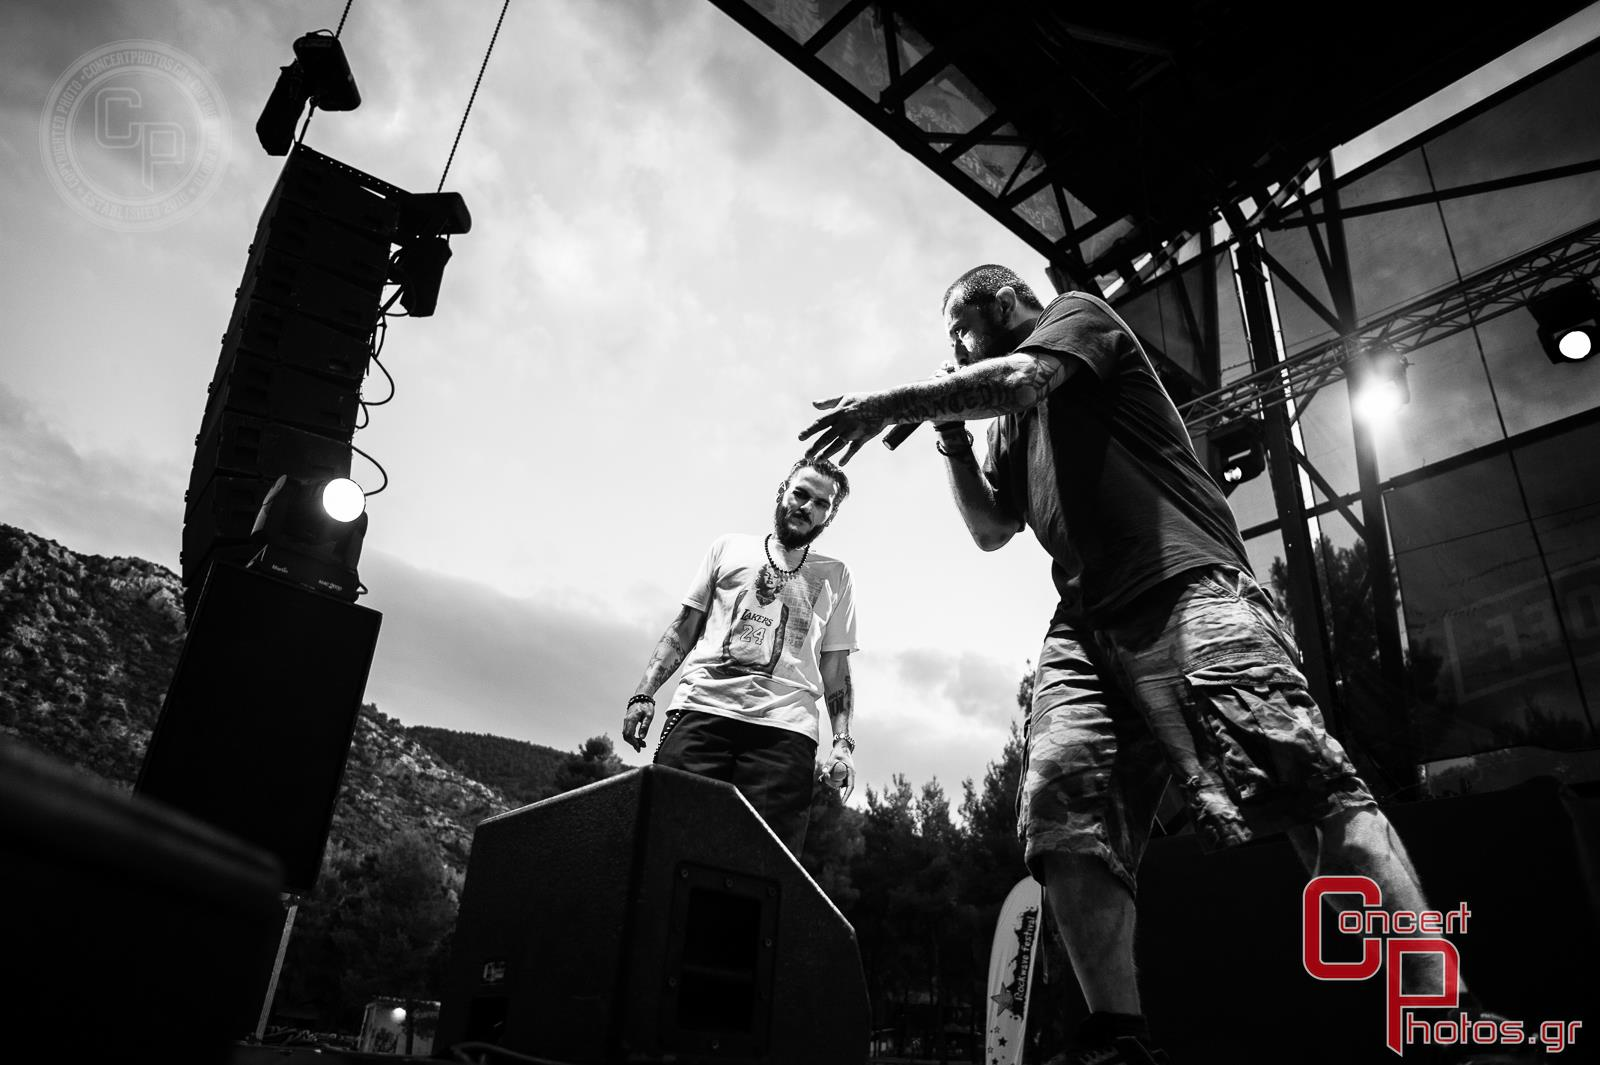 Rockwave 2014-Rockwave 2014 - Day 1 photographer:  - Rockwave-2014-80